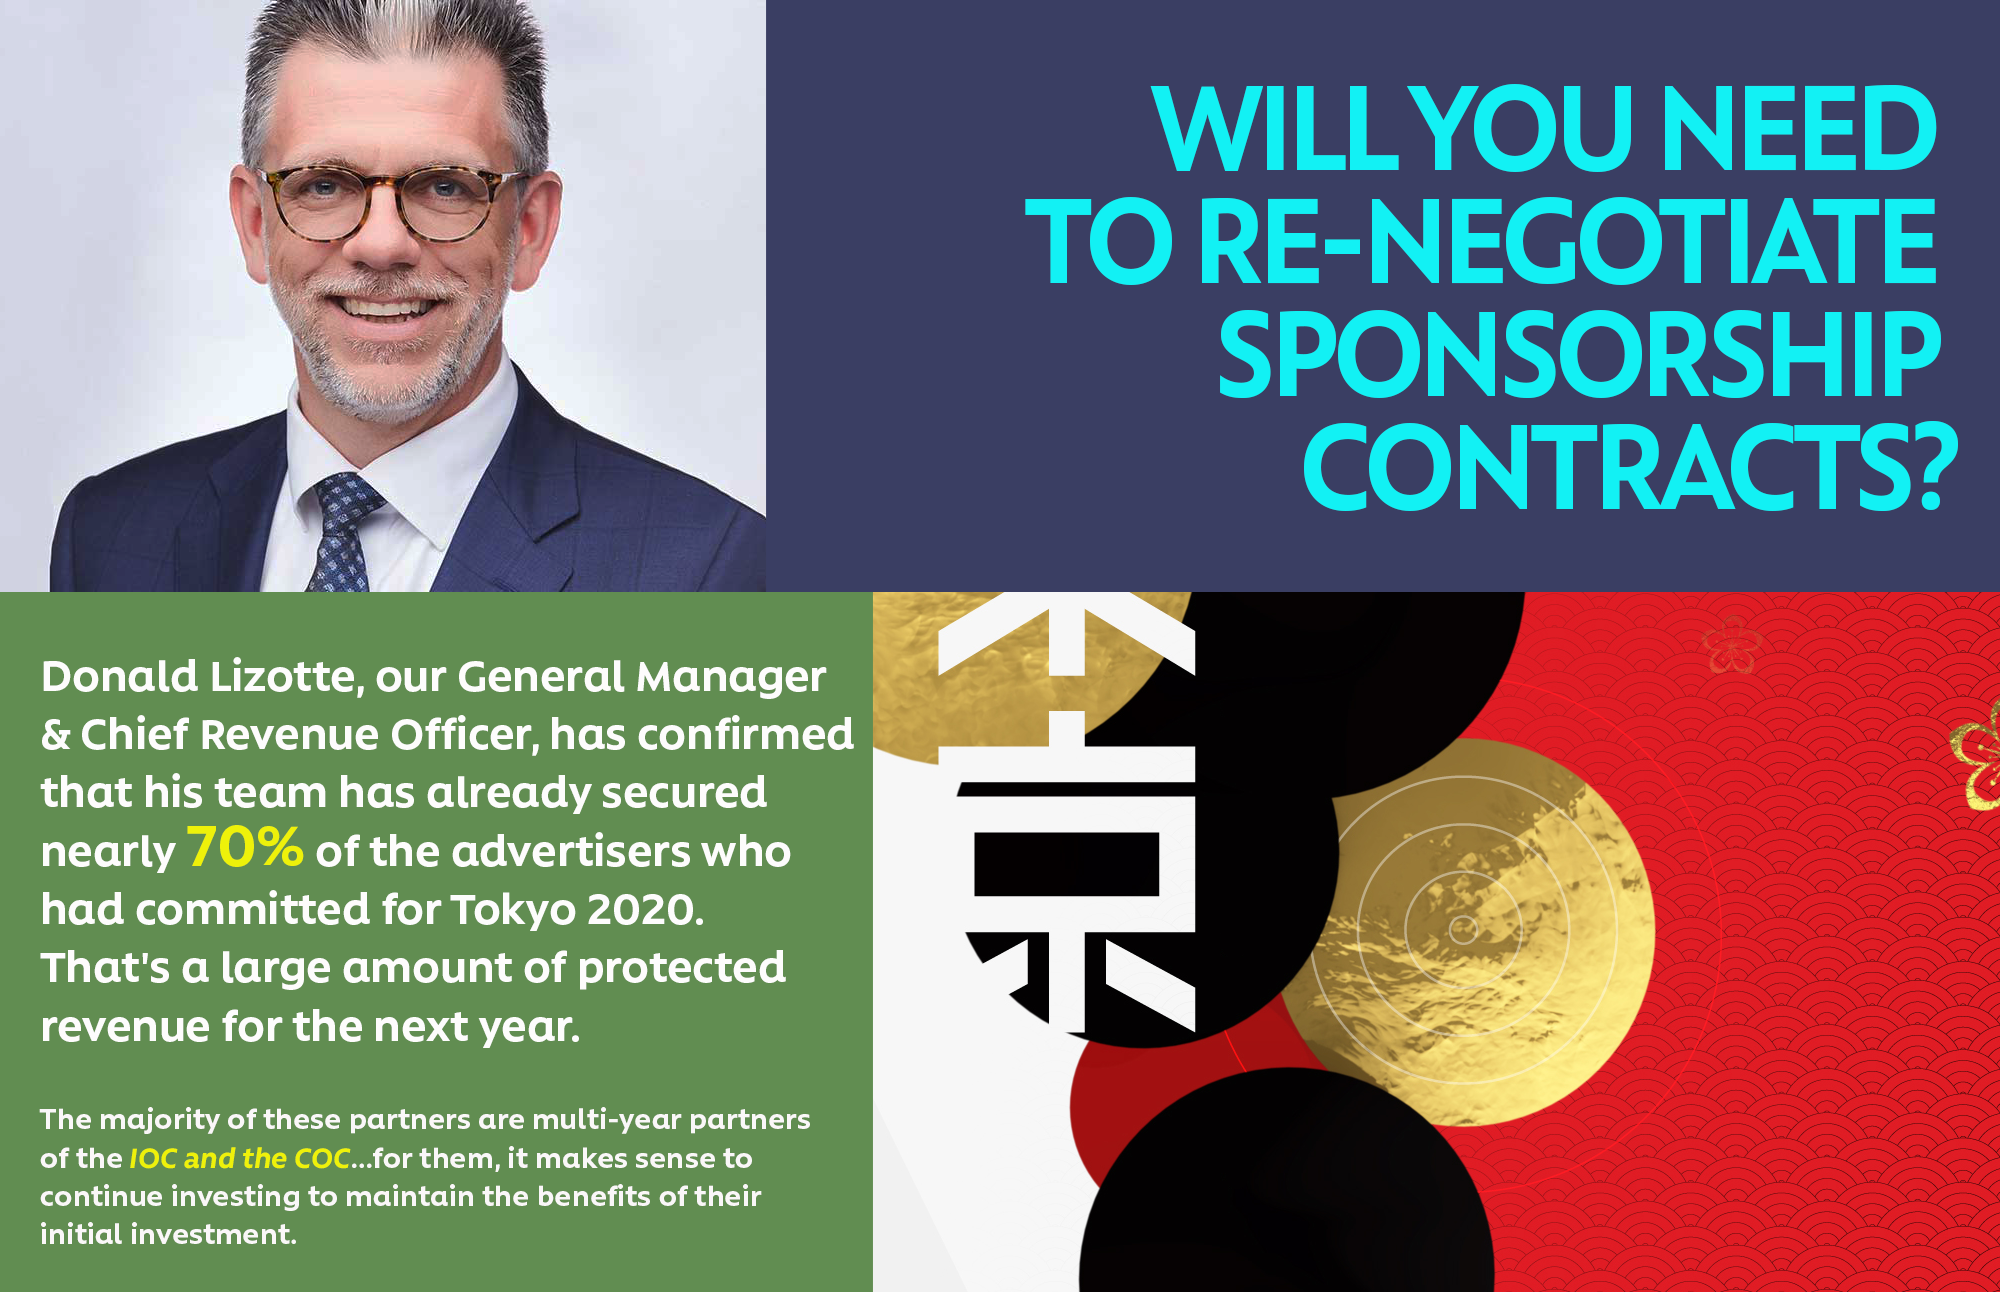 Will you need to re-negotiate sponsorship contracts? Donald Lizotte, our General Manager & Chief Revenue Officer, has confirmed that his team has already secured nearly 70% of the advertisers who had committed for Tokyo 2020. That's a large amount of protected revenue for the next year.